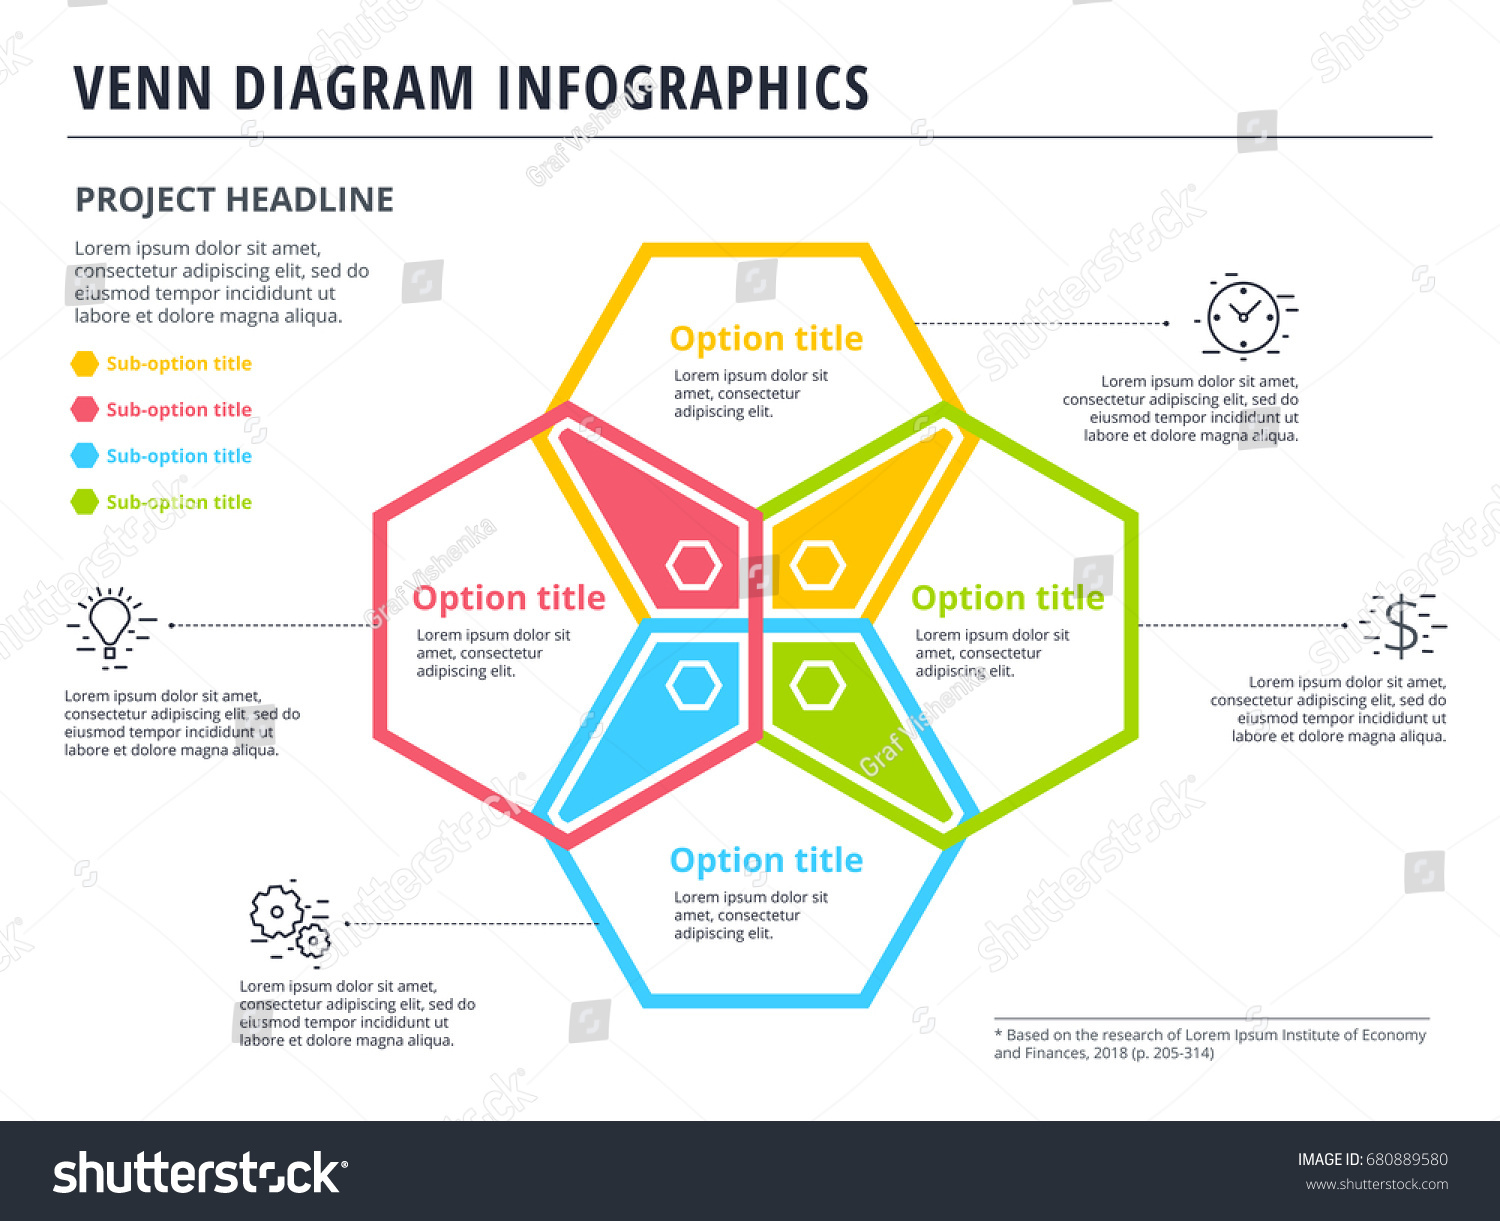 Venn diagram 4 circles infographics template stock vector venn diagram with 4 circles infographics template design vector overlapping shapes for set or logic pooptronica Images